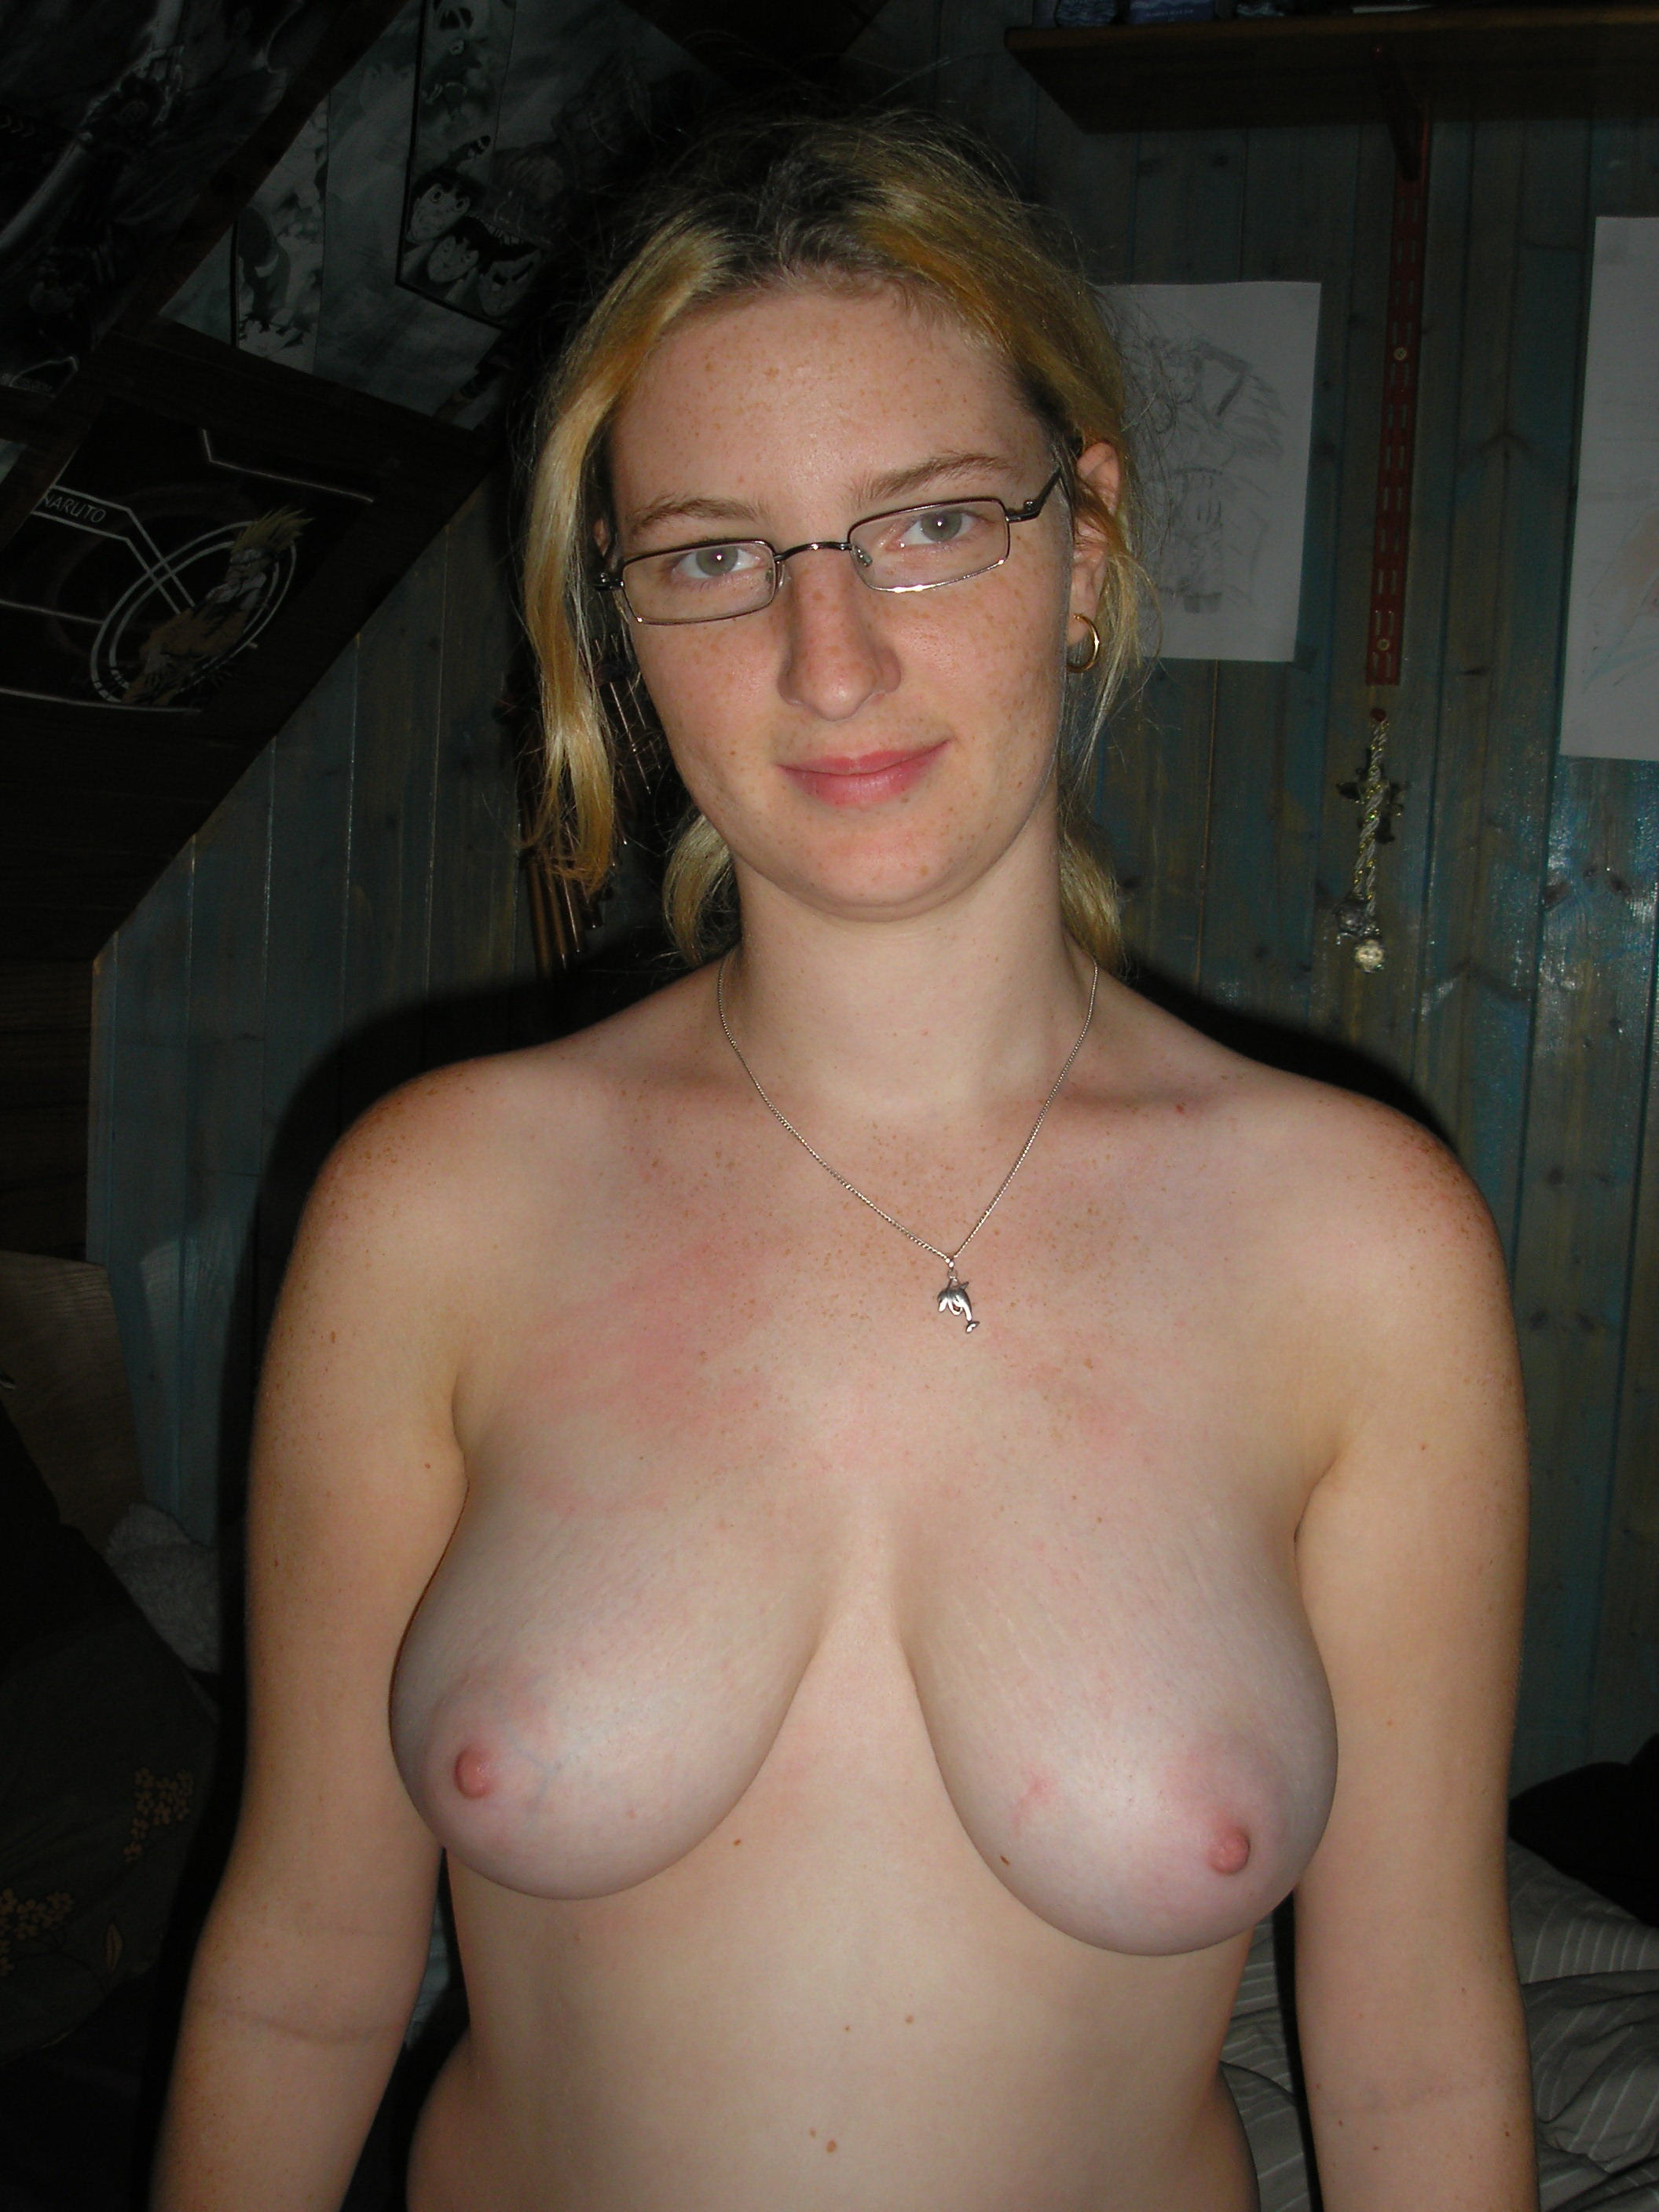 Apologise, ugl nerdy naked girls